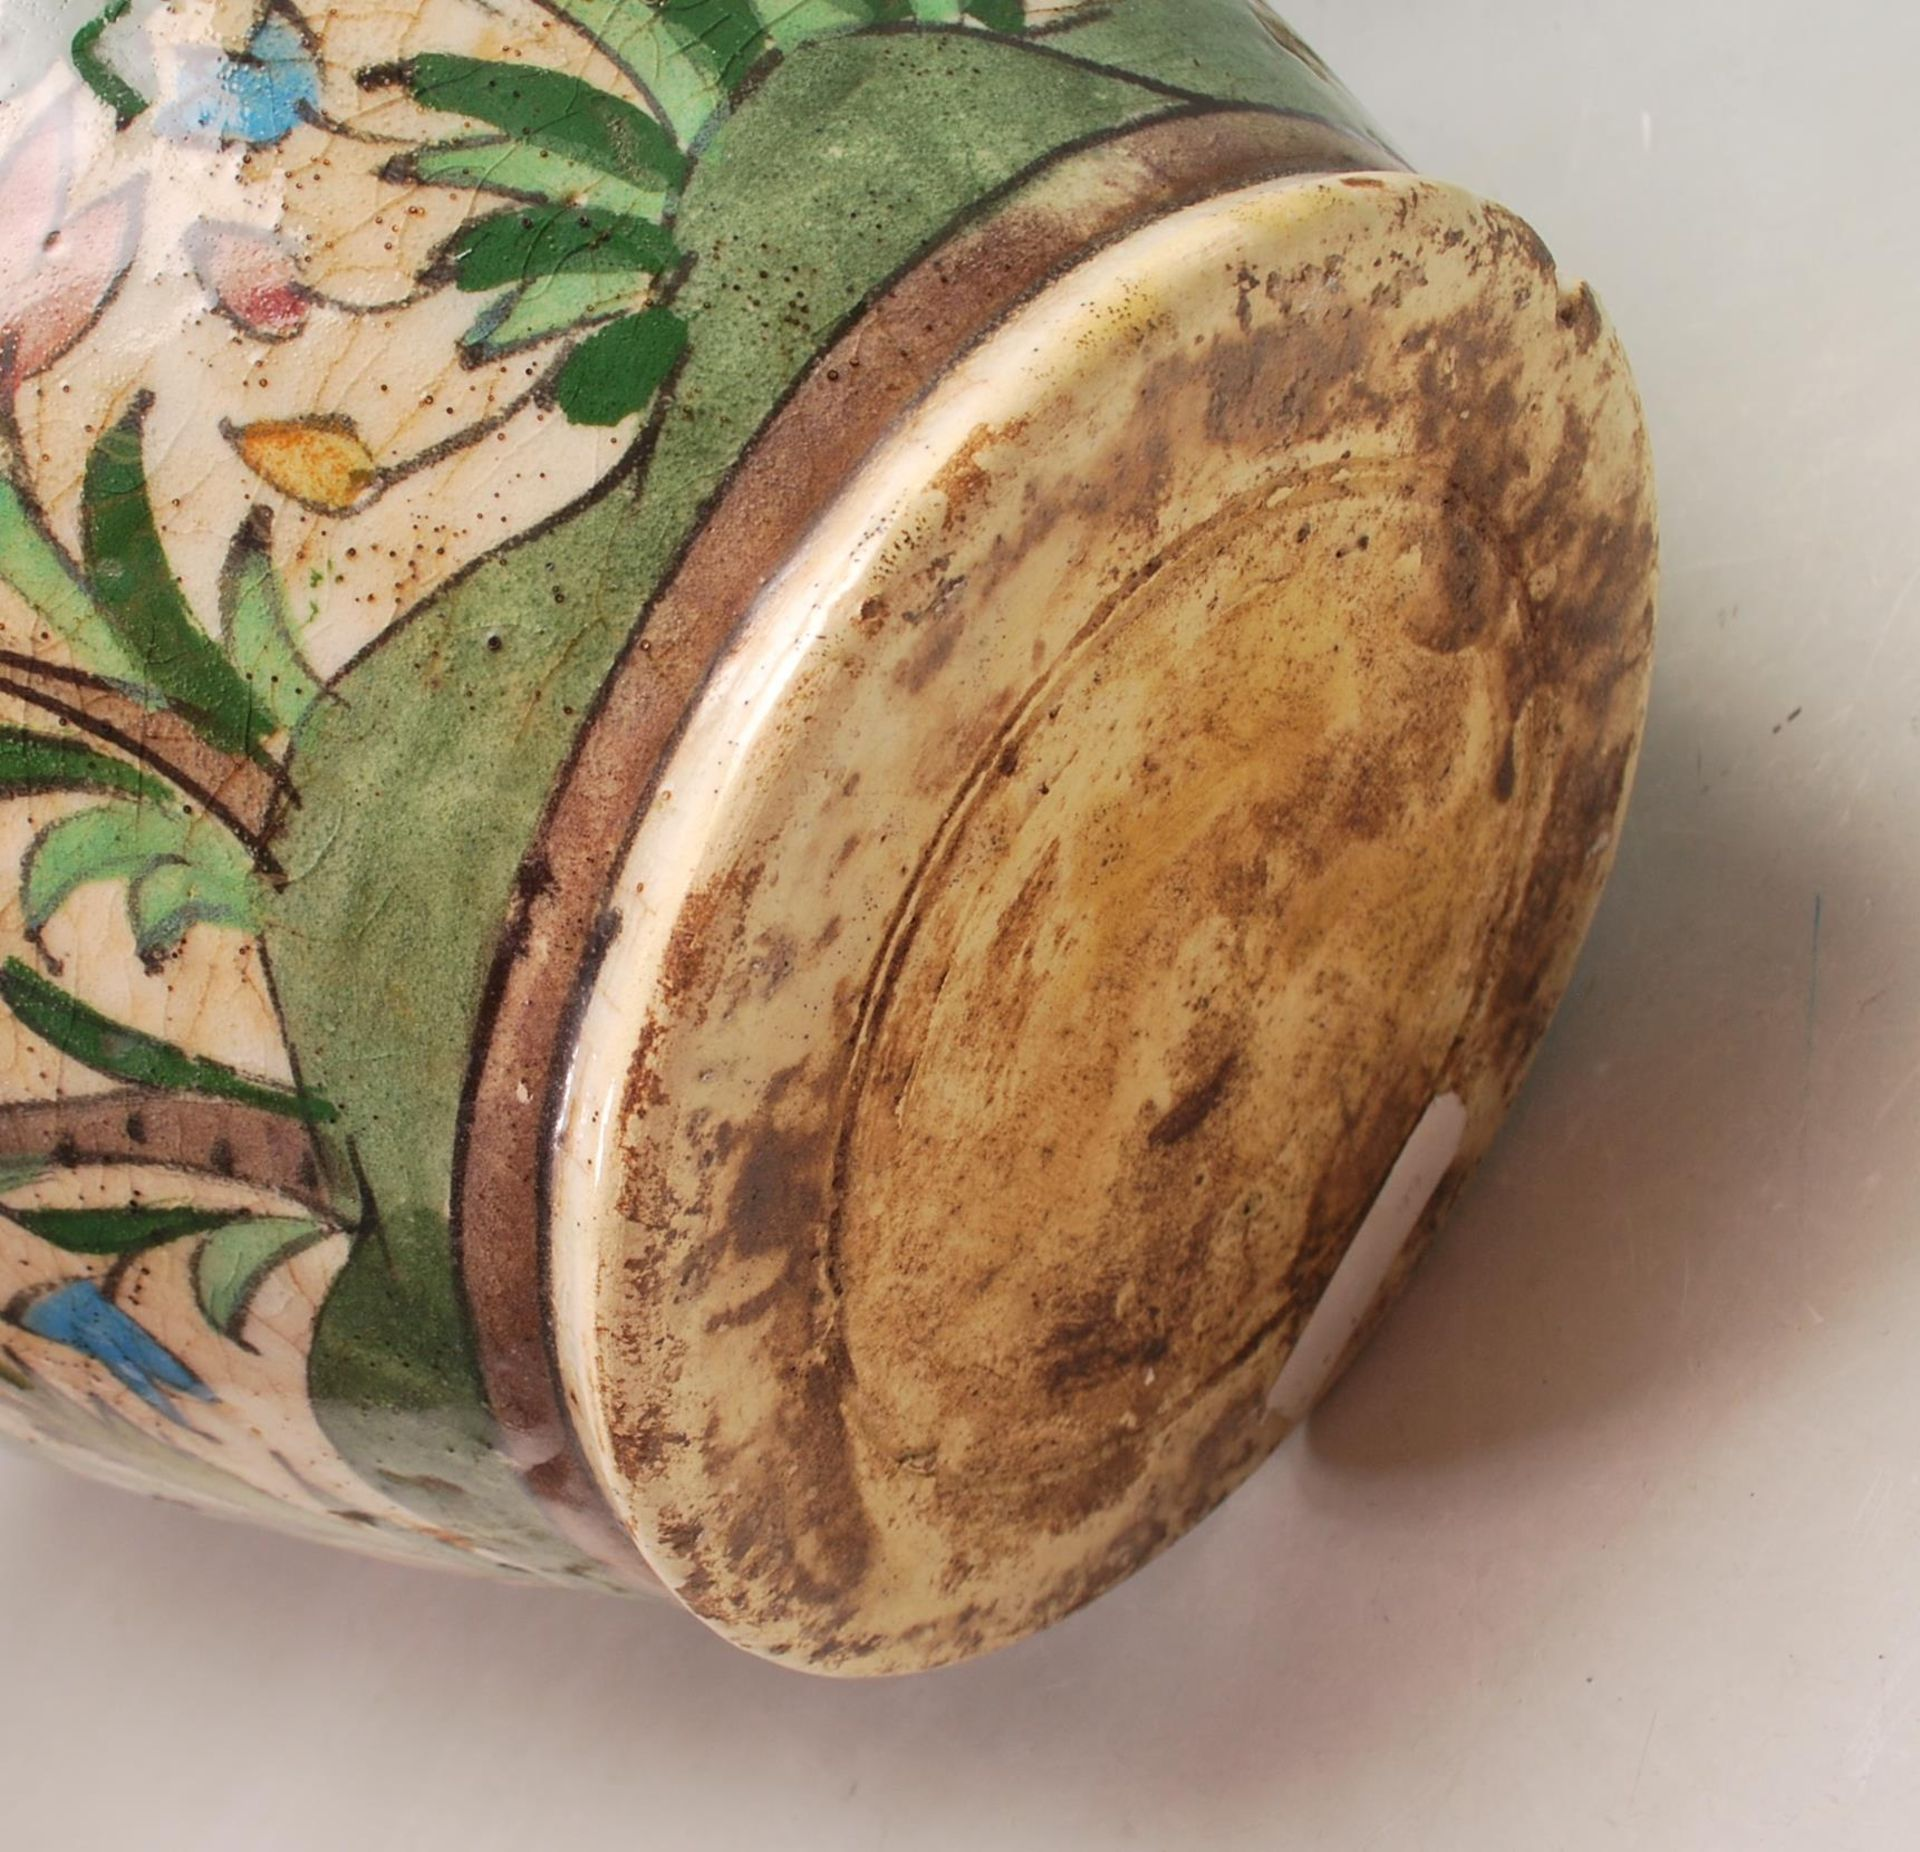 LATE 20TH CENTURY PERSIAN ISLAMIC VASE WITH POLYCHROME DECORATION - Image 7 of 7